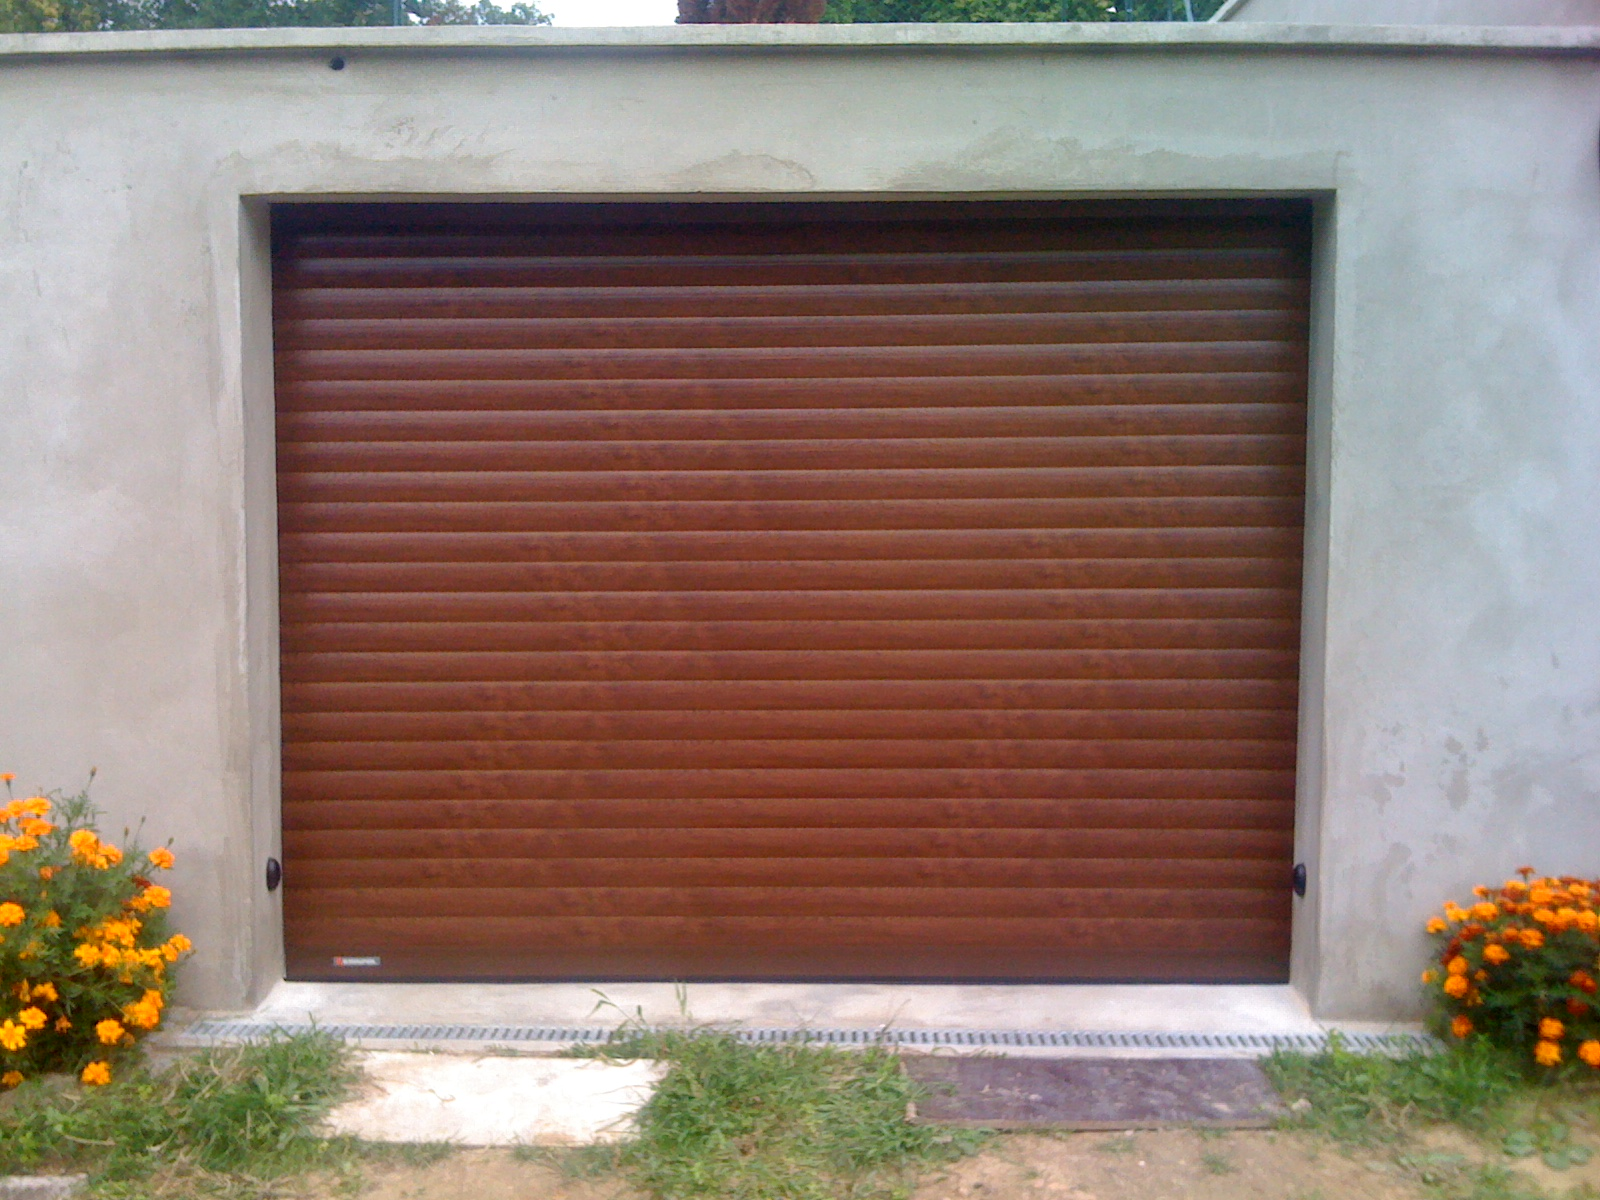 Porte garage enroulable ton bois 1 centpourcentpose for Porte garage enroulable